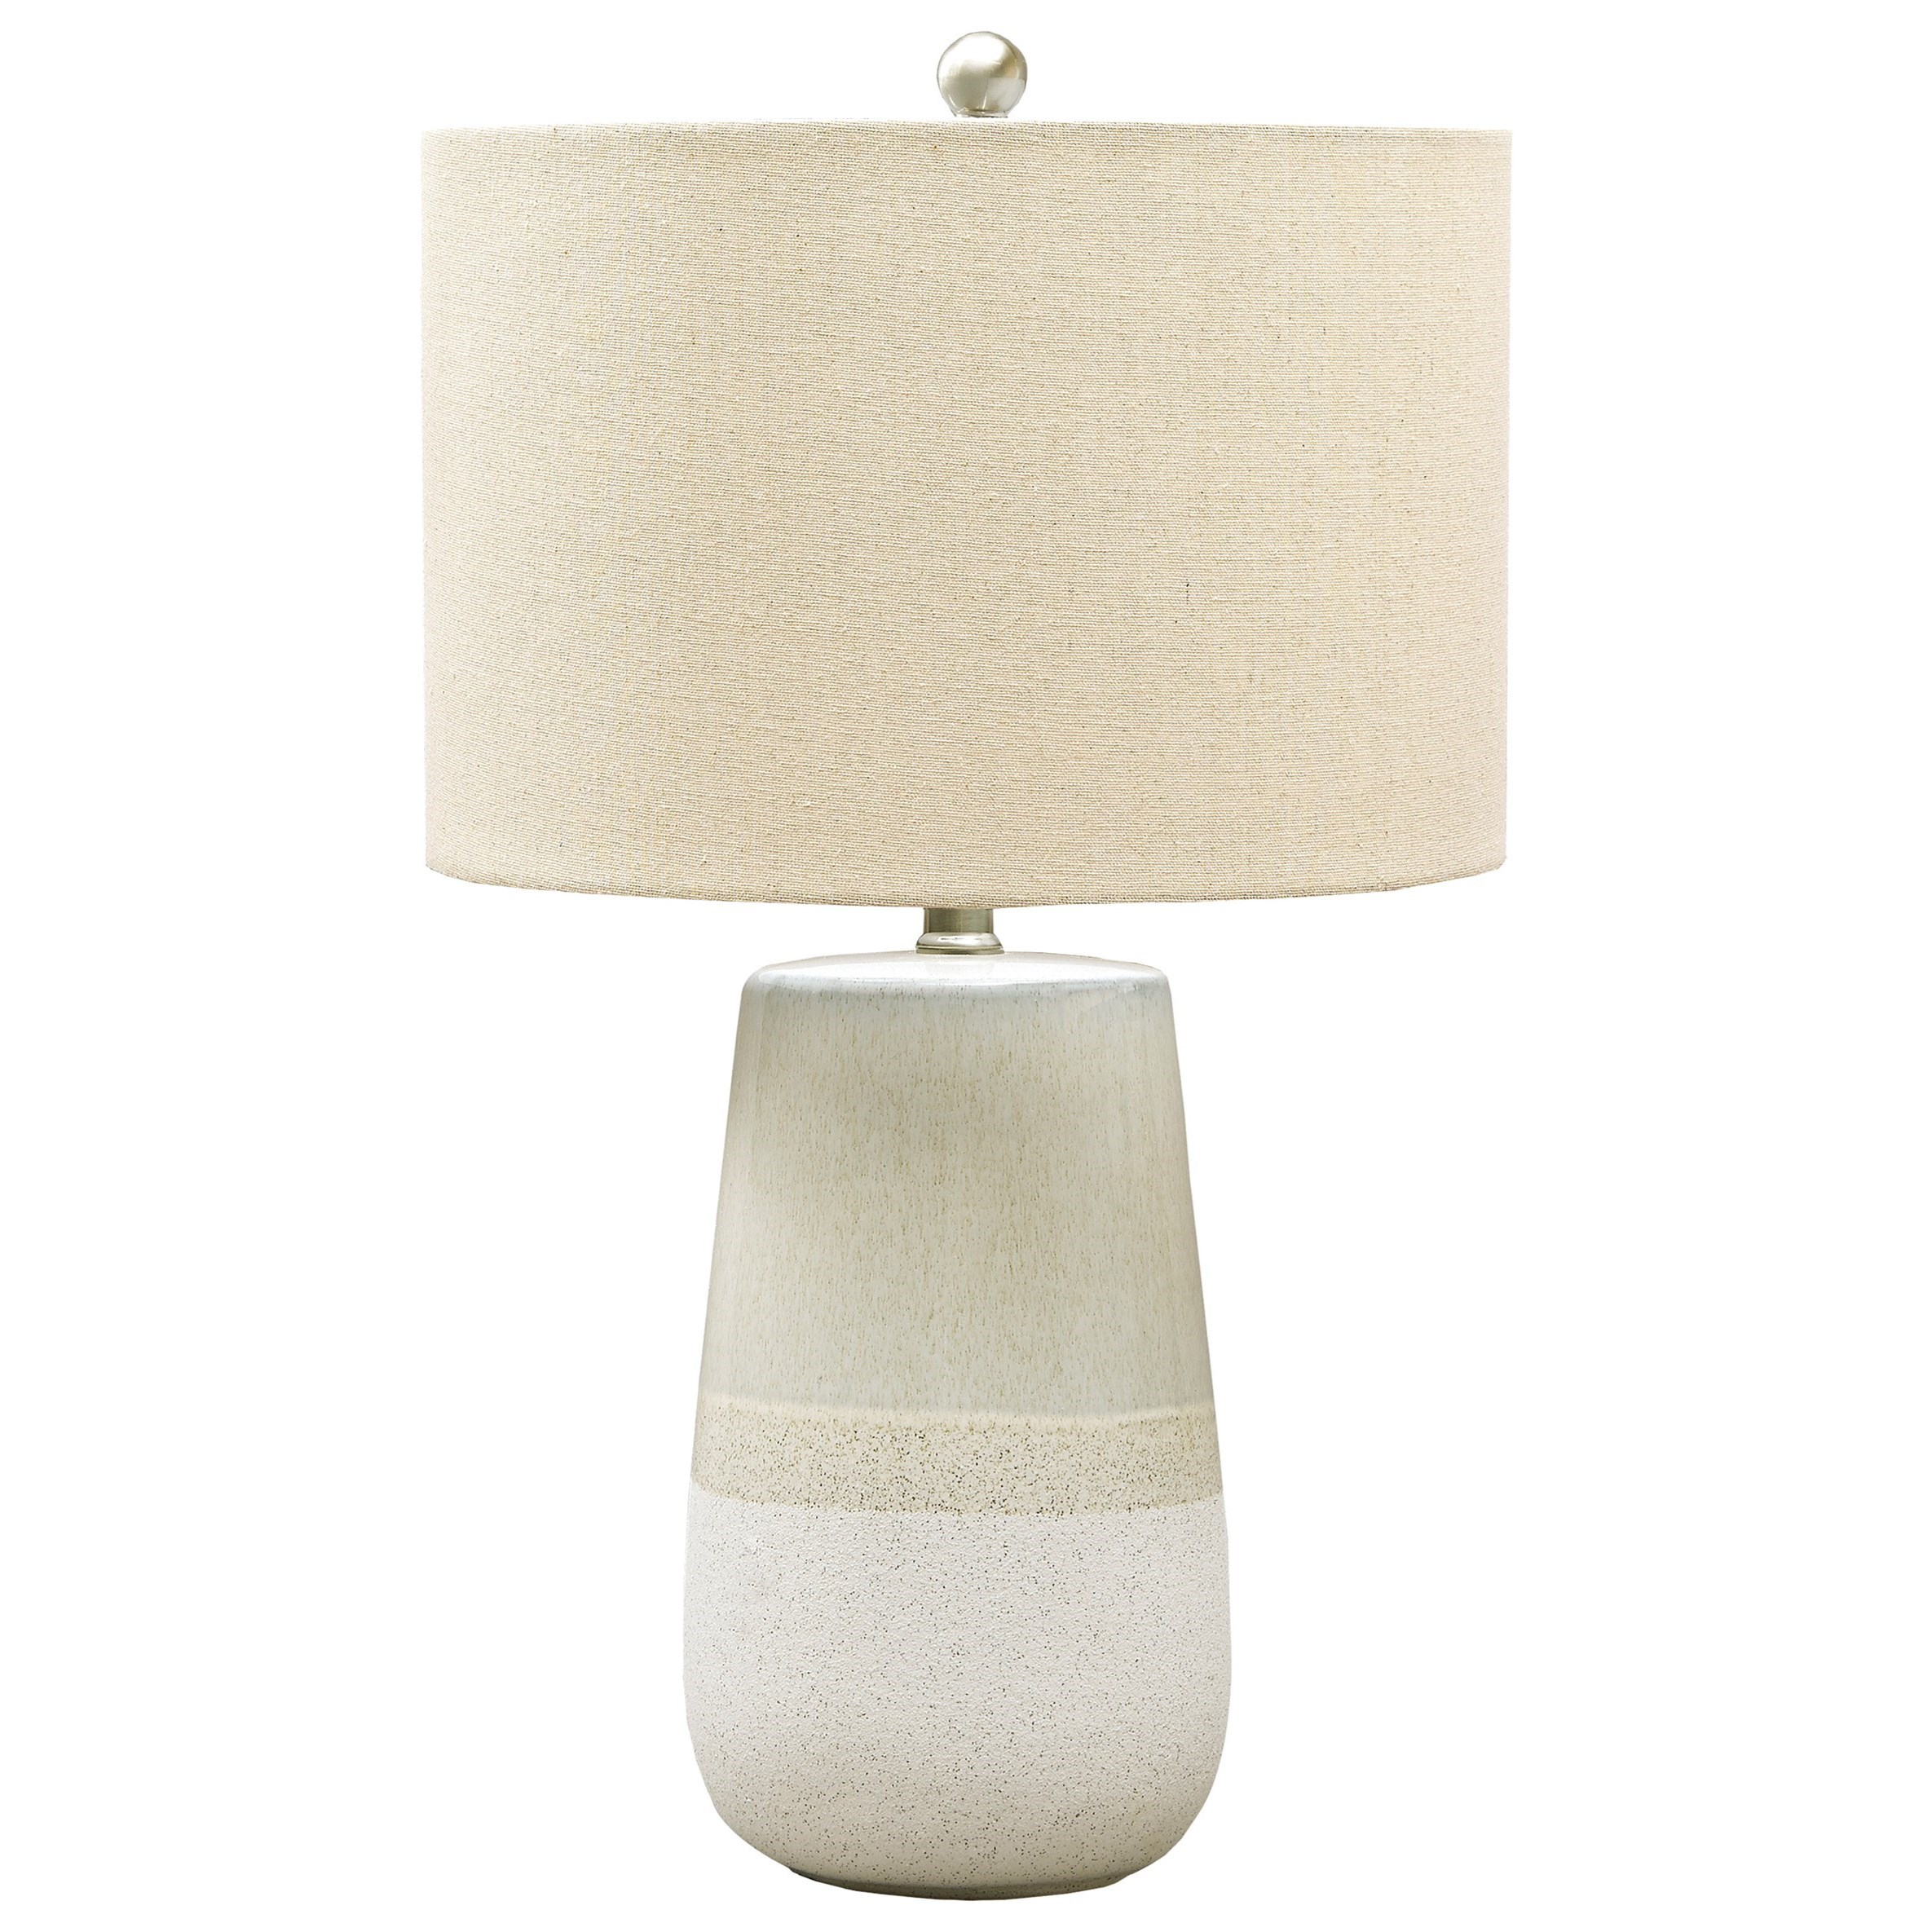 Lamps - Casual Shavon Beige/White Ceramic Table Lamp by Signature Design by Ashley at HomeWorld Furniture